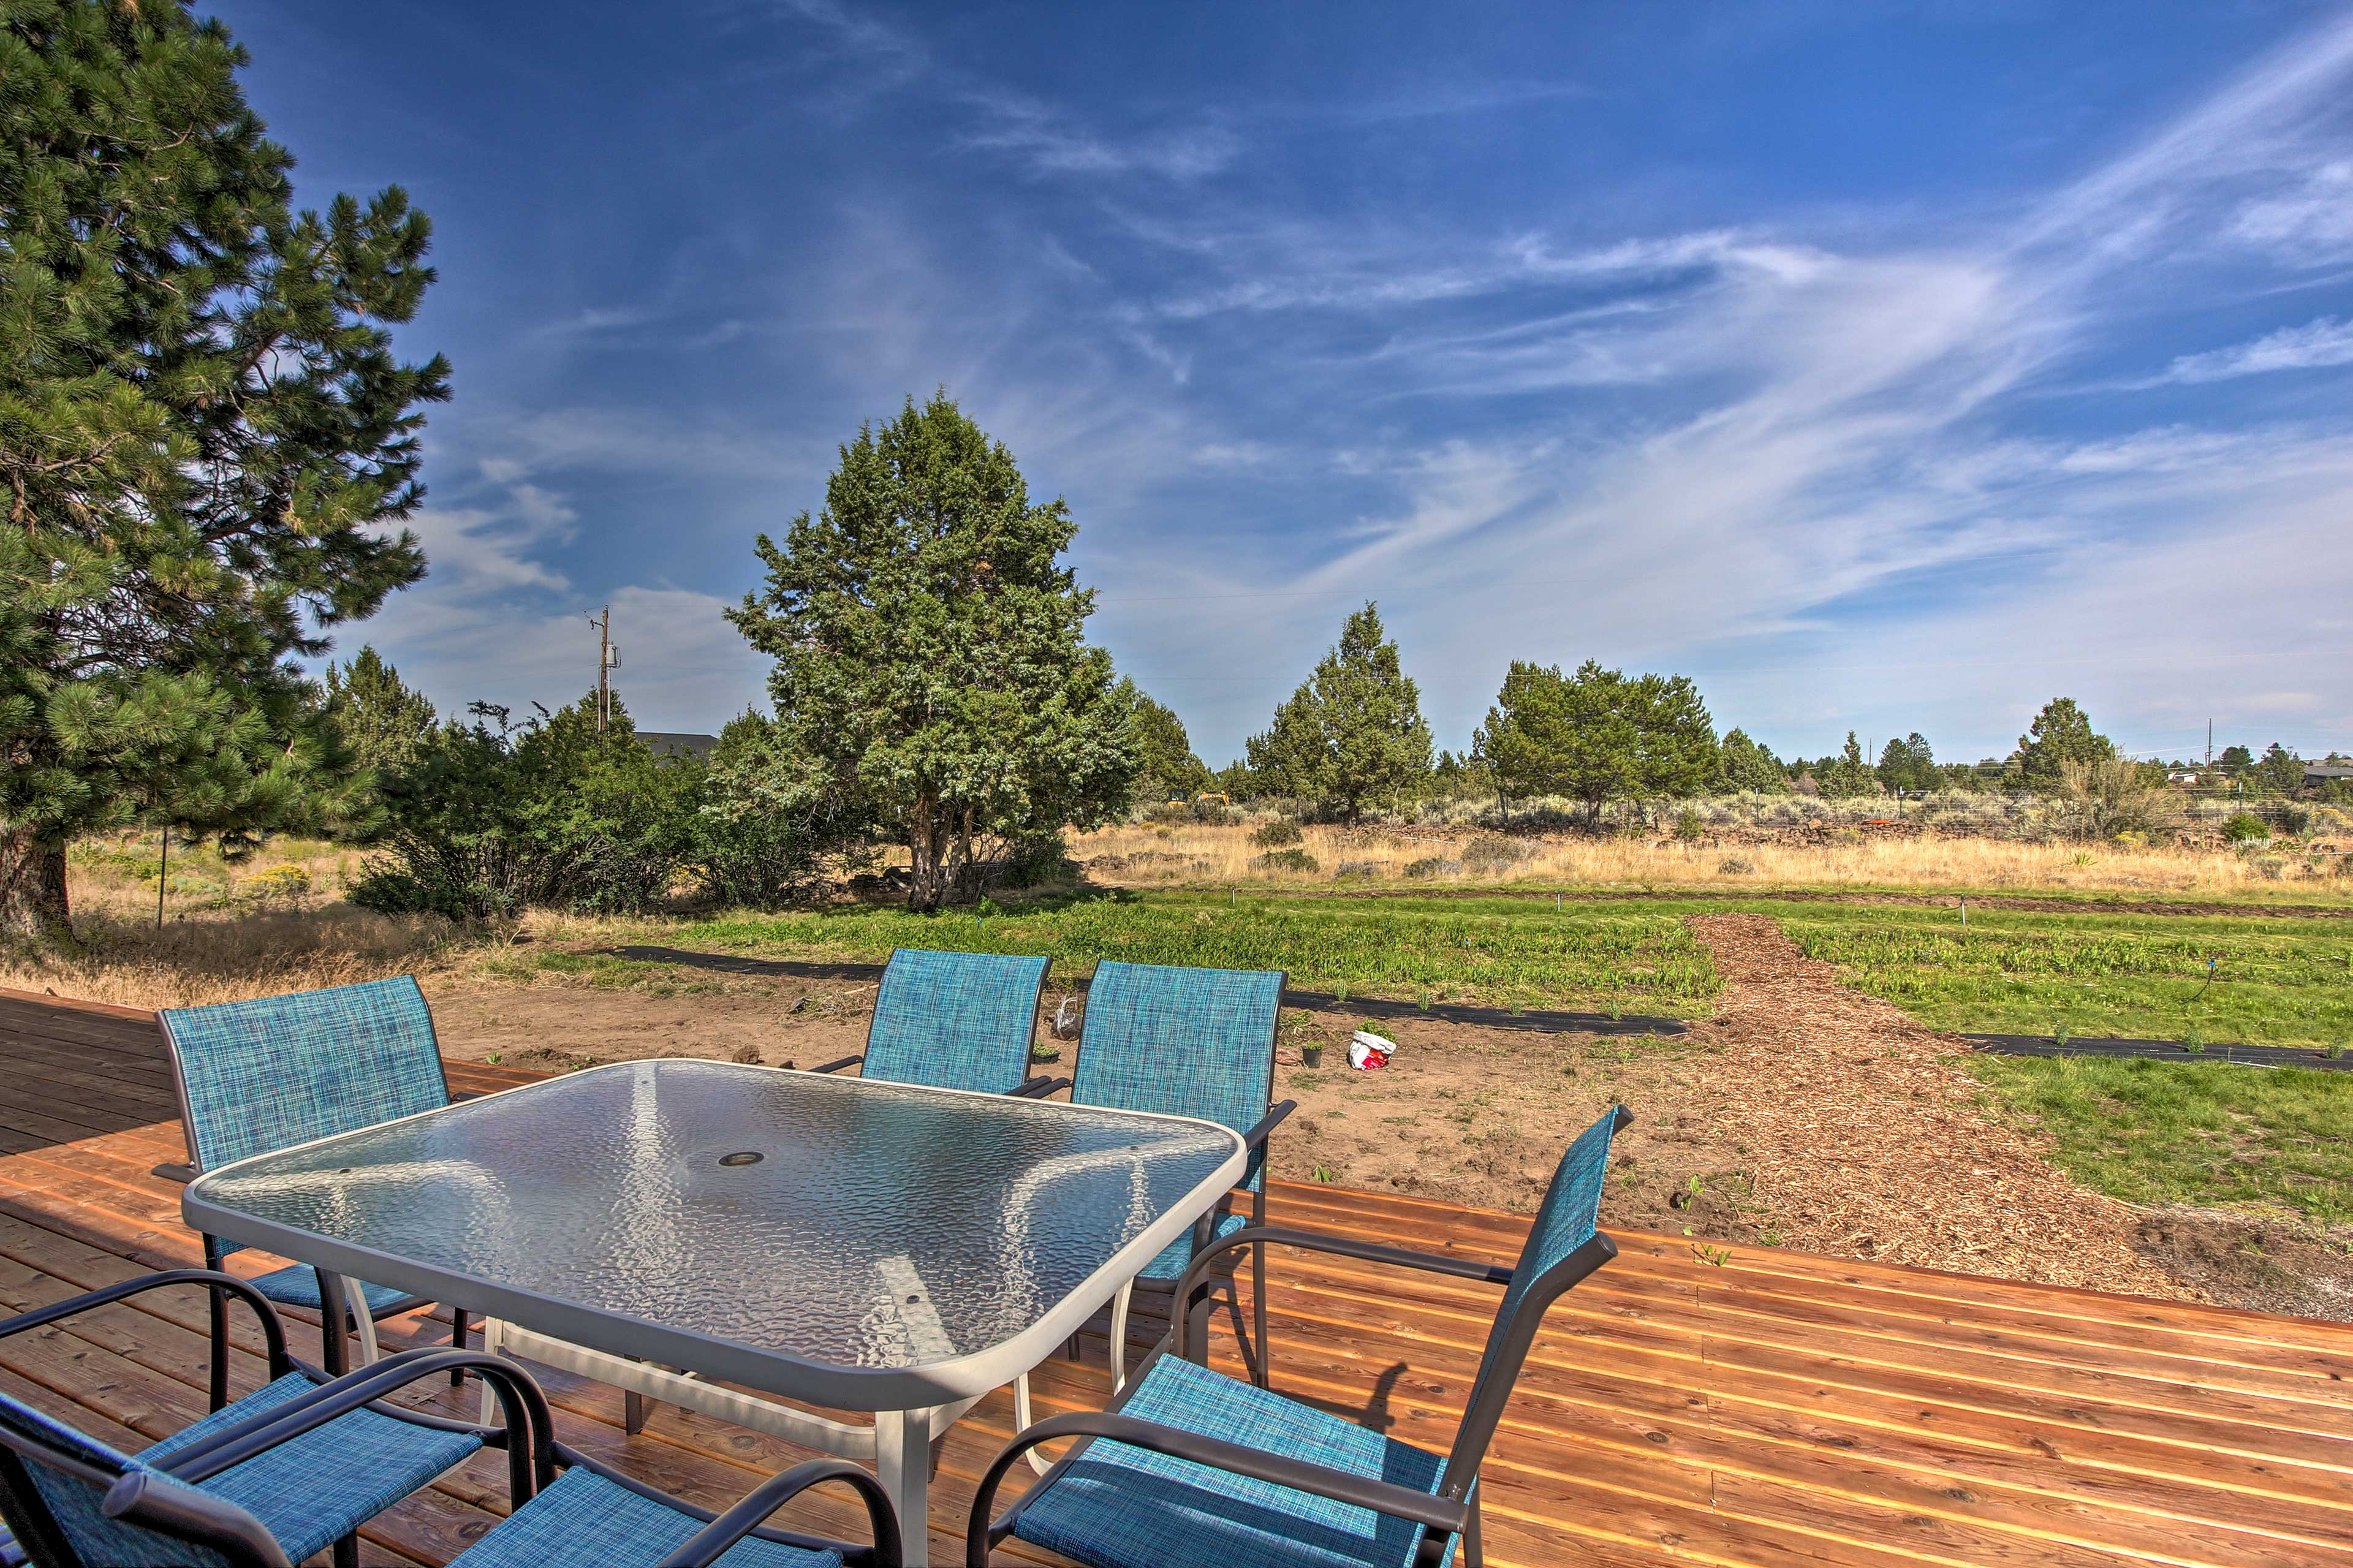 Dine al fresco and enjoy the great outdoors.